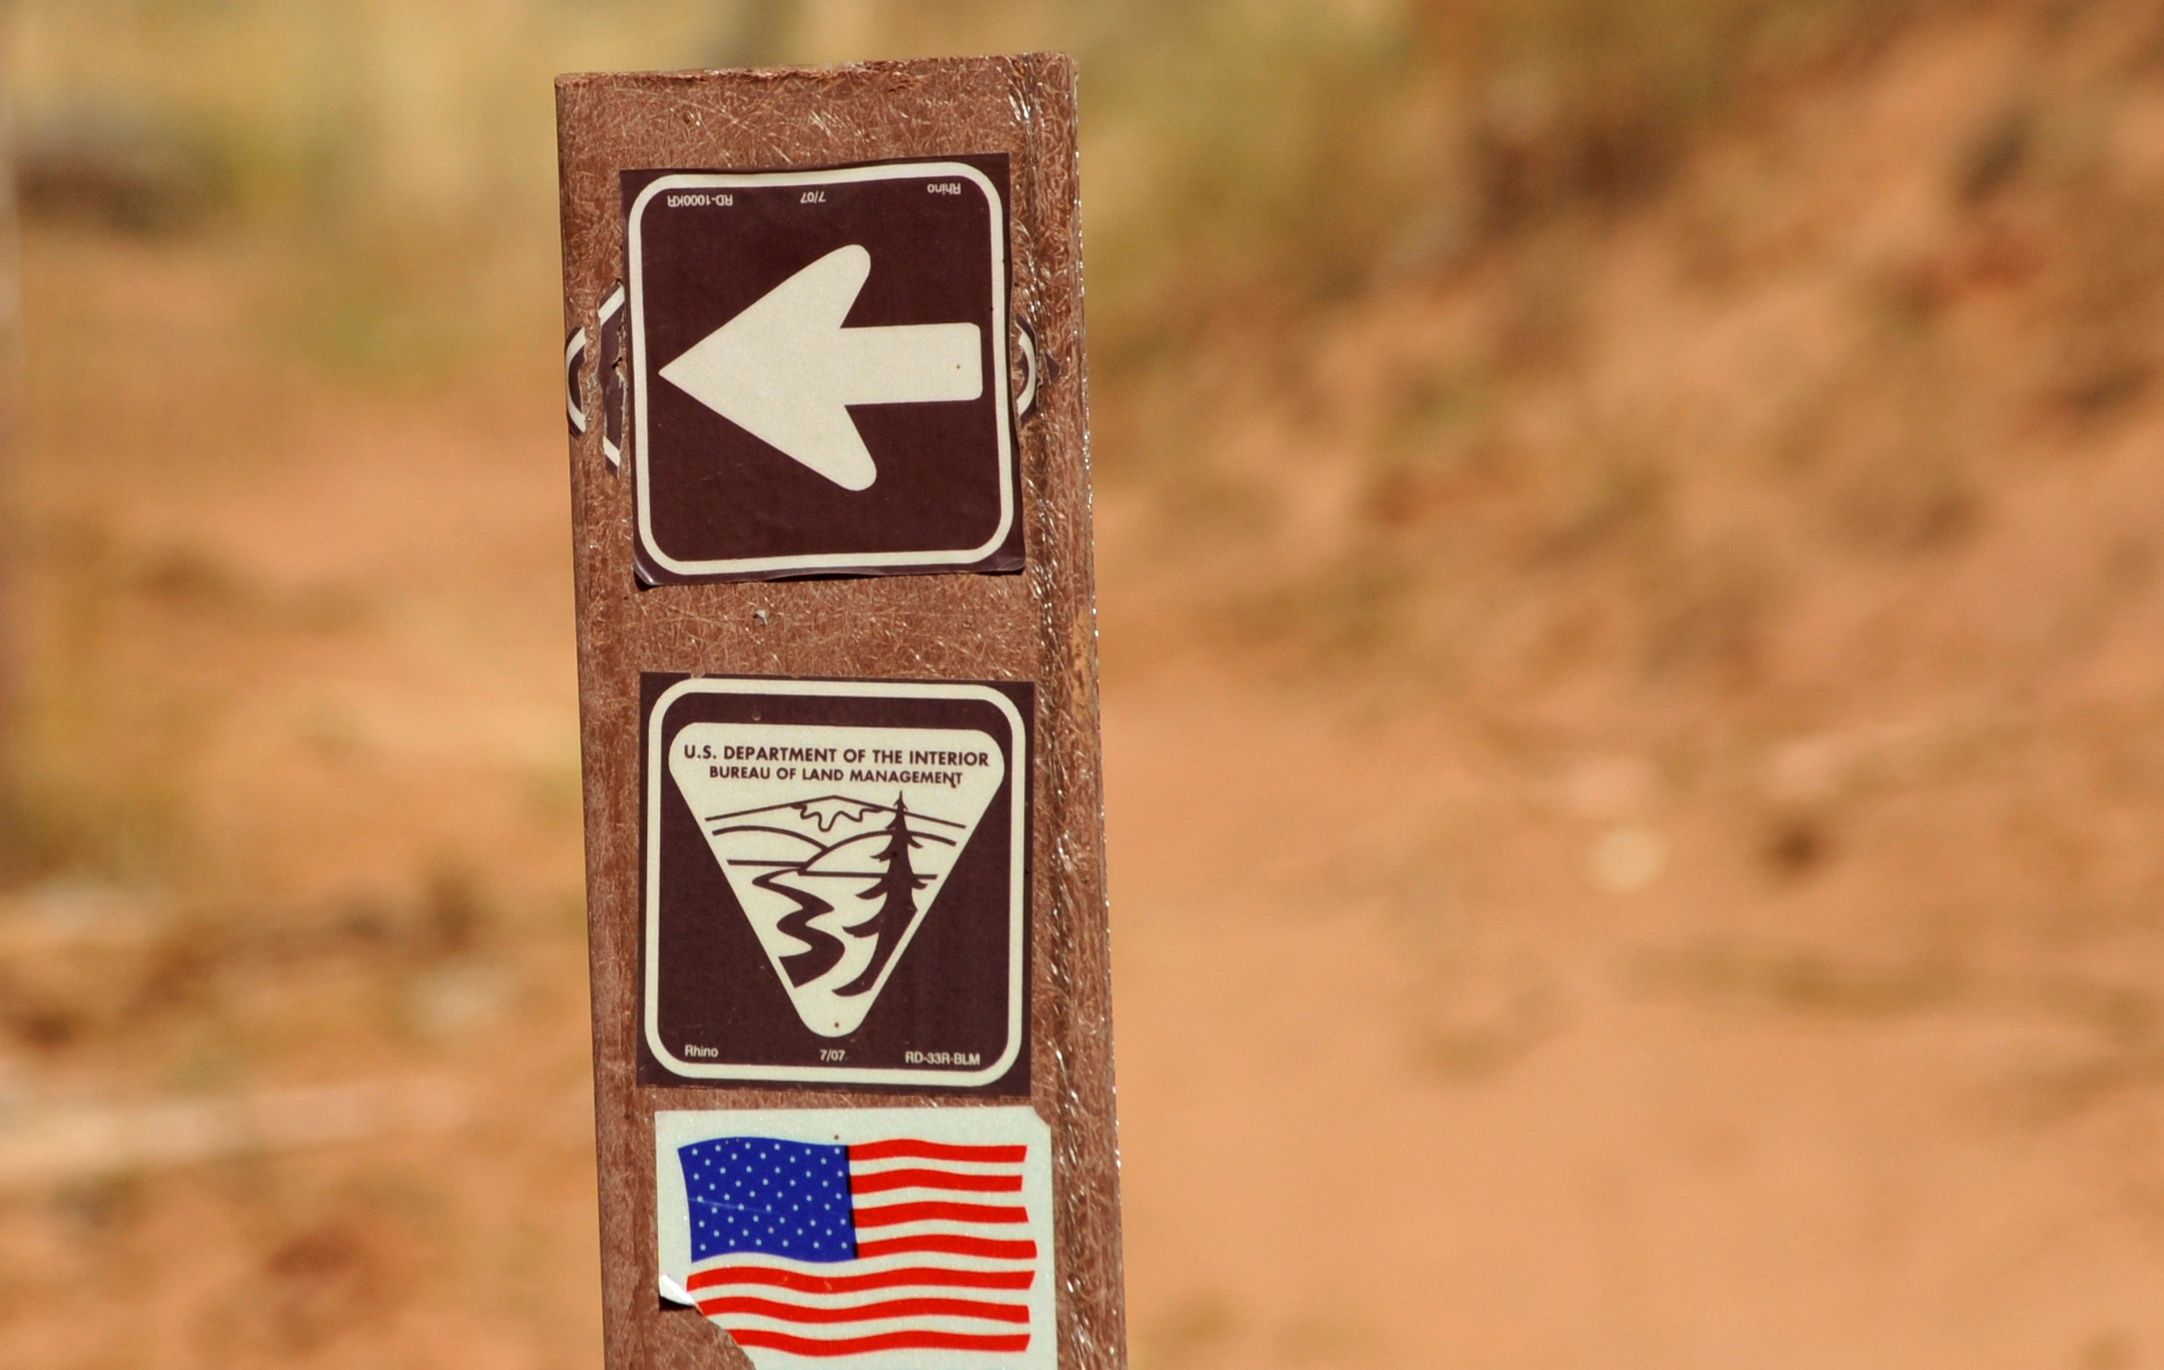 U.S. Department of the Interior Bureau of Land Management trail marker is shown along the Arch Canyon trail in Bears Ears National Monument, New Mexico, U.S., October 27, 2017. REUTERS/Andrew Cullen/File Photo